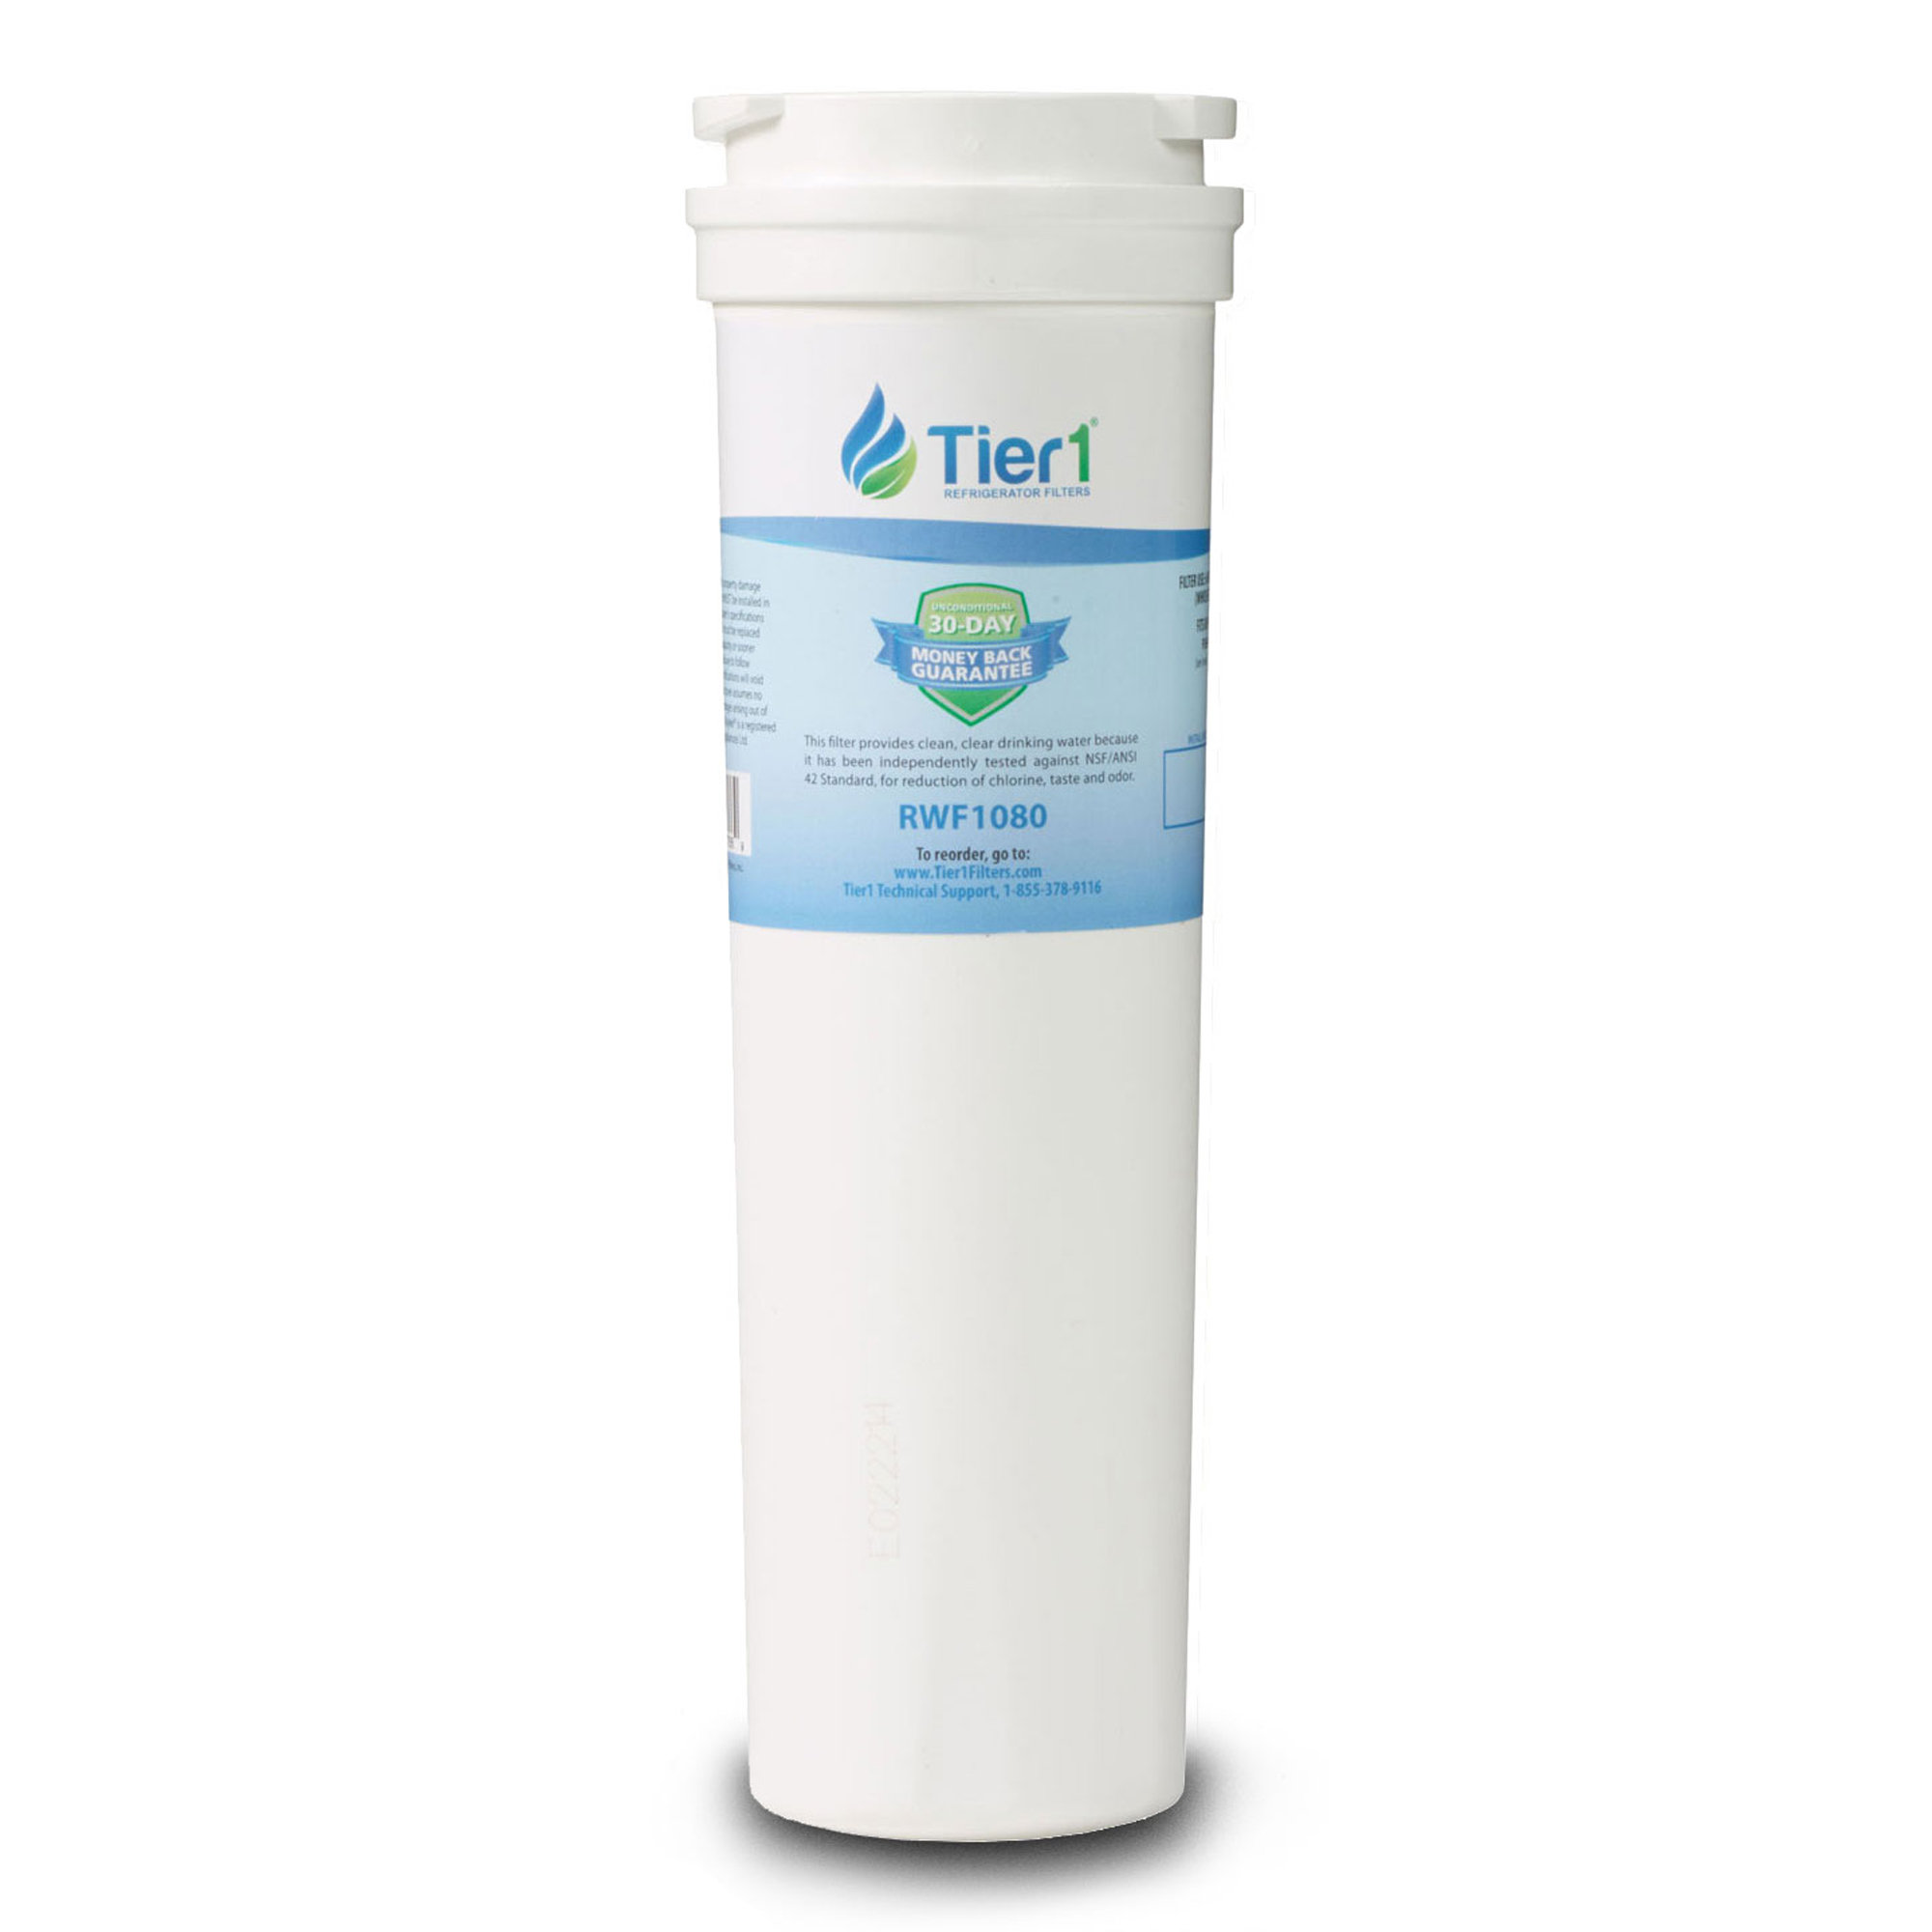 Fisher & Paykel 836848 Comparable Refrigerator Water Filter Replacement by Tier1 TIER1-RWF1080